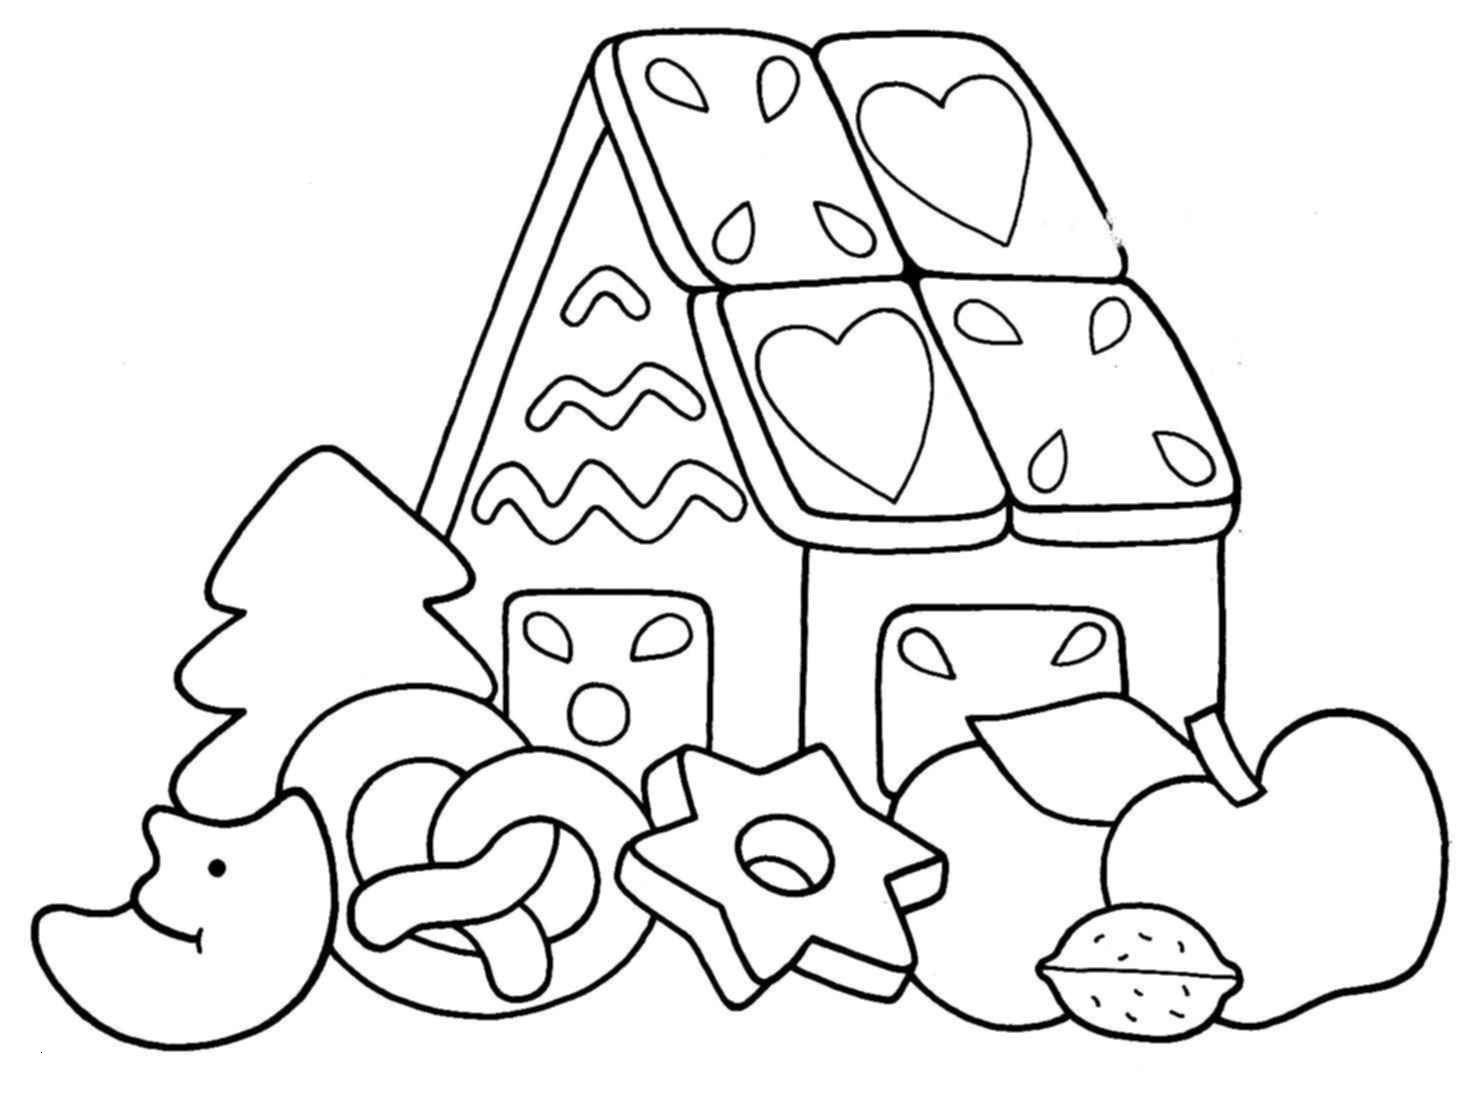 Winnie The Pooh Coloring Pages Beautiful Ausmalbilder Winnie Pooh Einzigartig 23 Disney Malvorla Star Wars Coloring Book Coloring Books My Little Pony Coloring